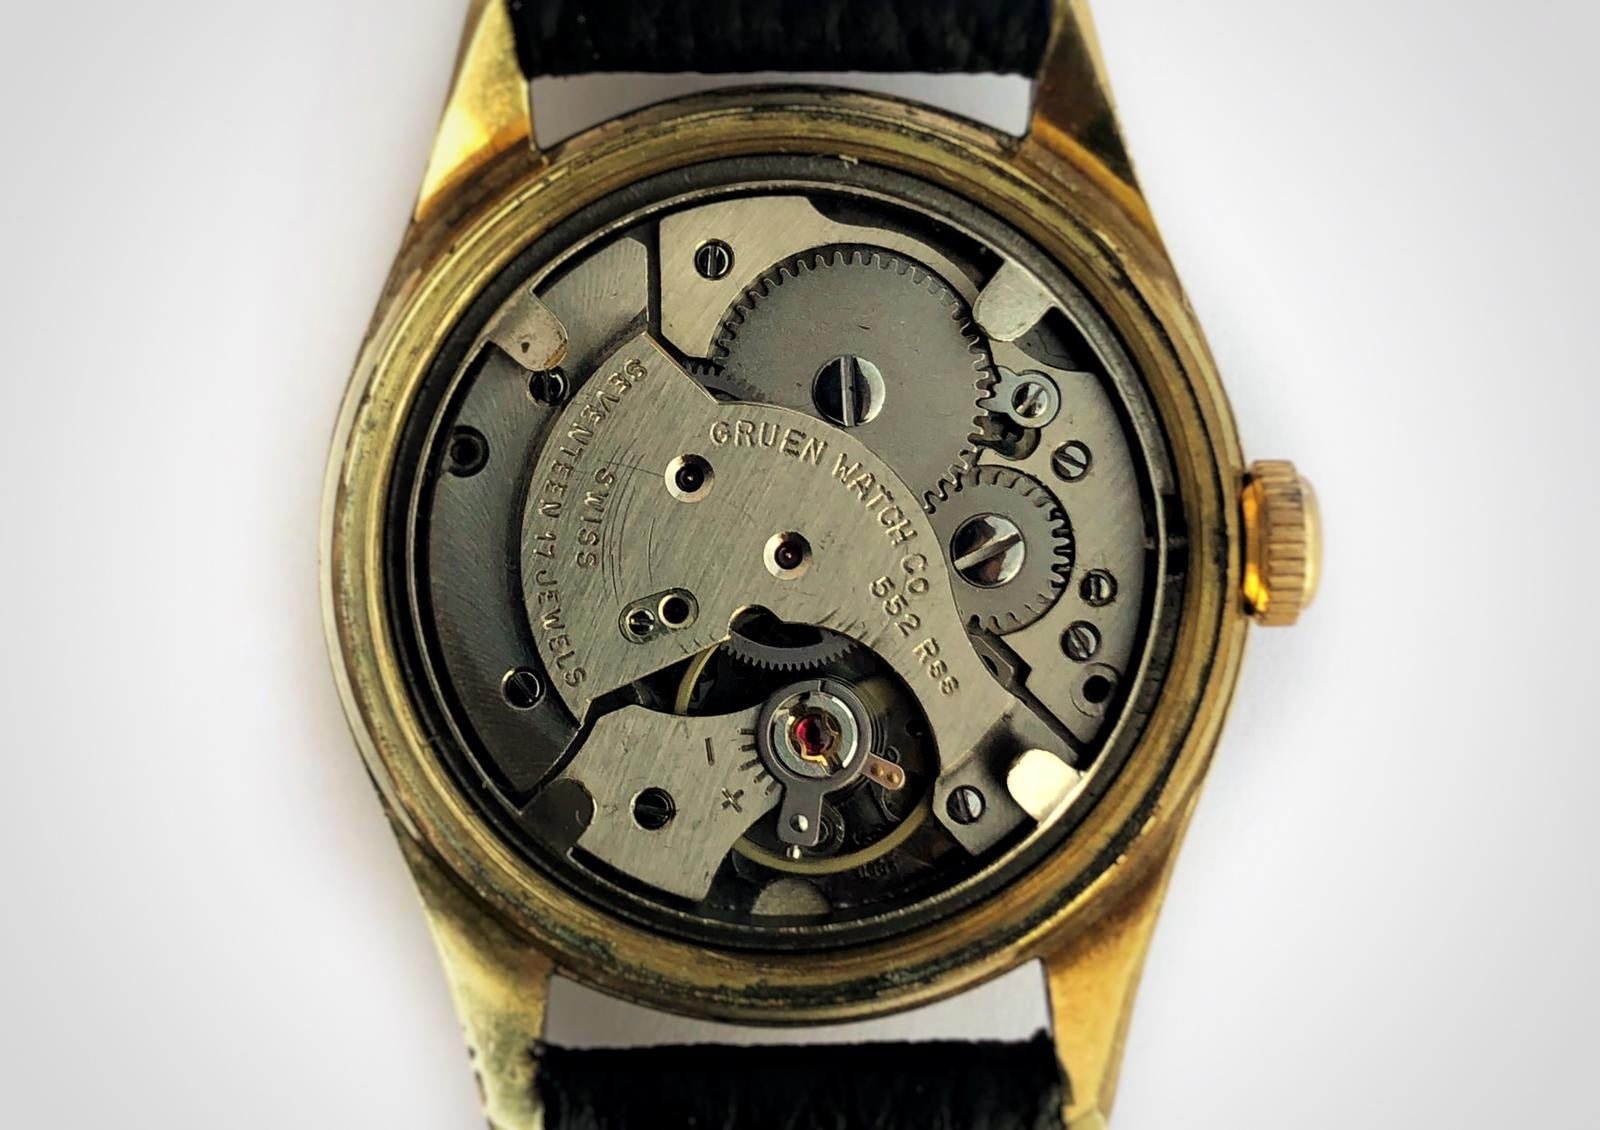 Mechanical hand wound movement of Vintage watch with linen dial and 3-6-9 pattern and gold case made by Gruen. First watch worn by James Bond as Sean Connery